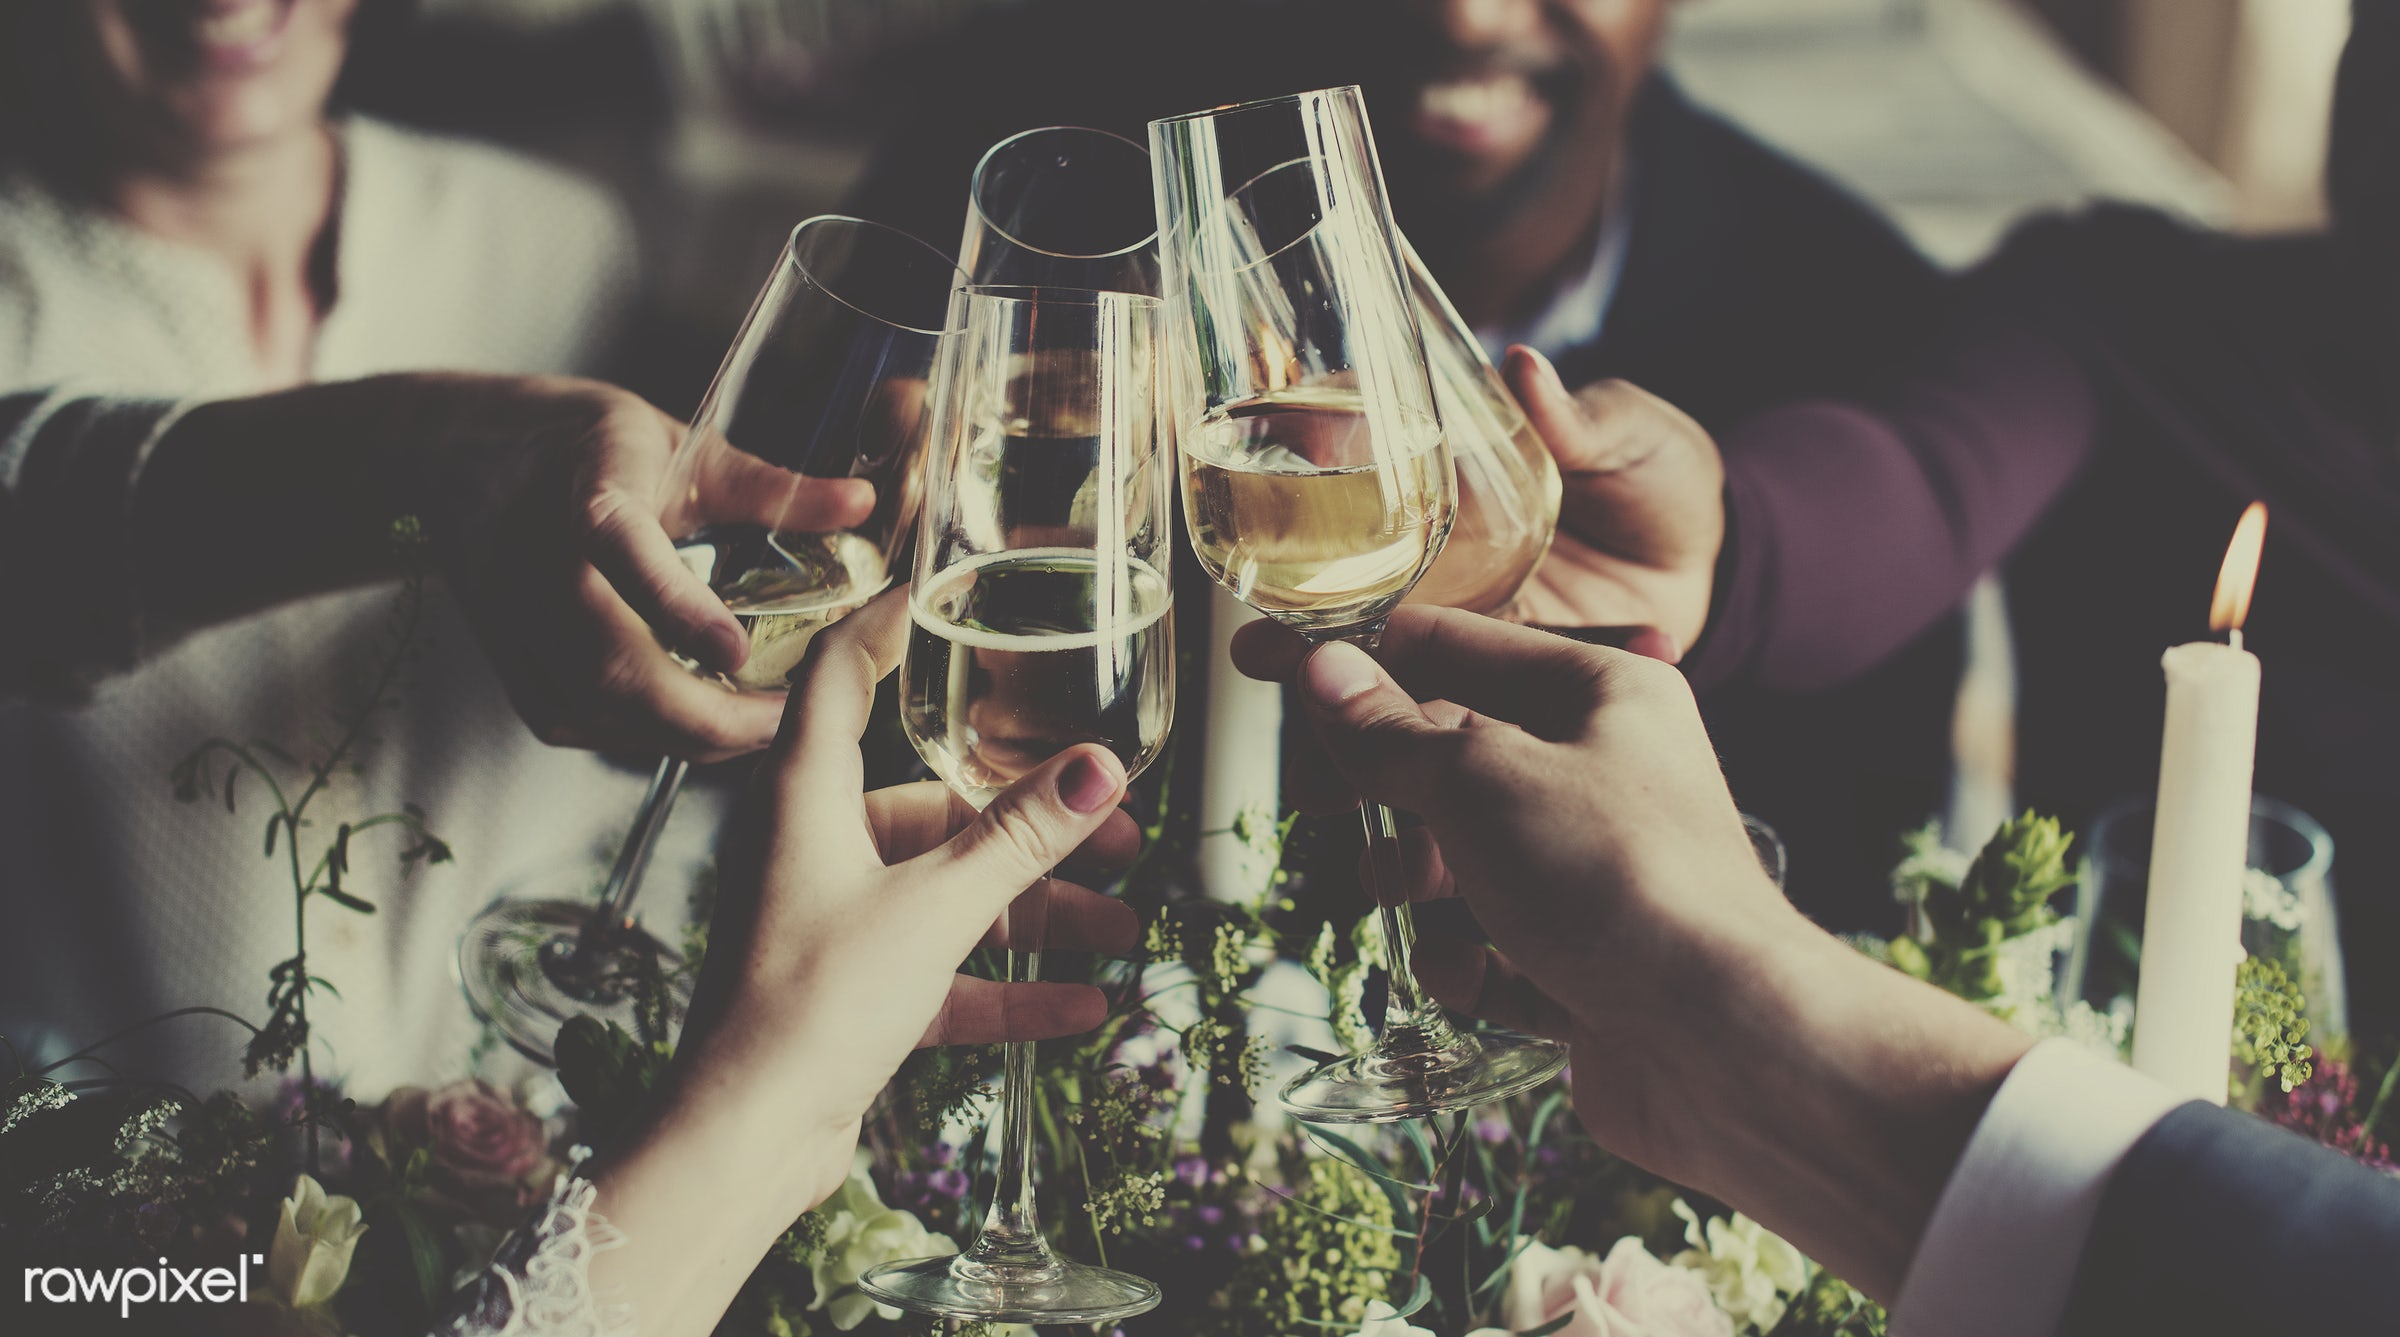 person, occasion, people, together, love, friends, married, hands, gather, woman, event, couple, men, bride, celebrate, man...